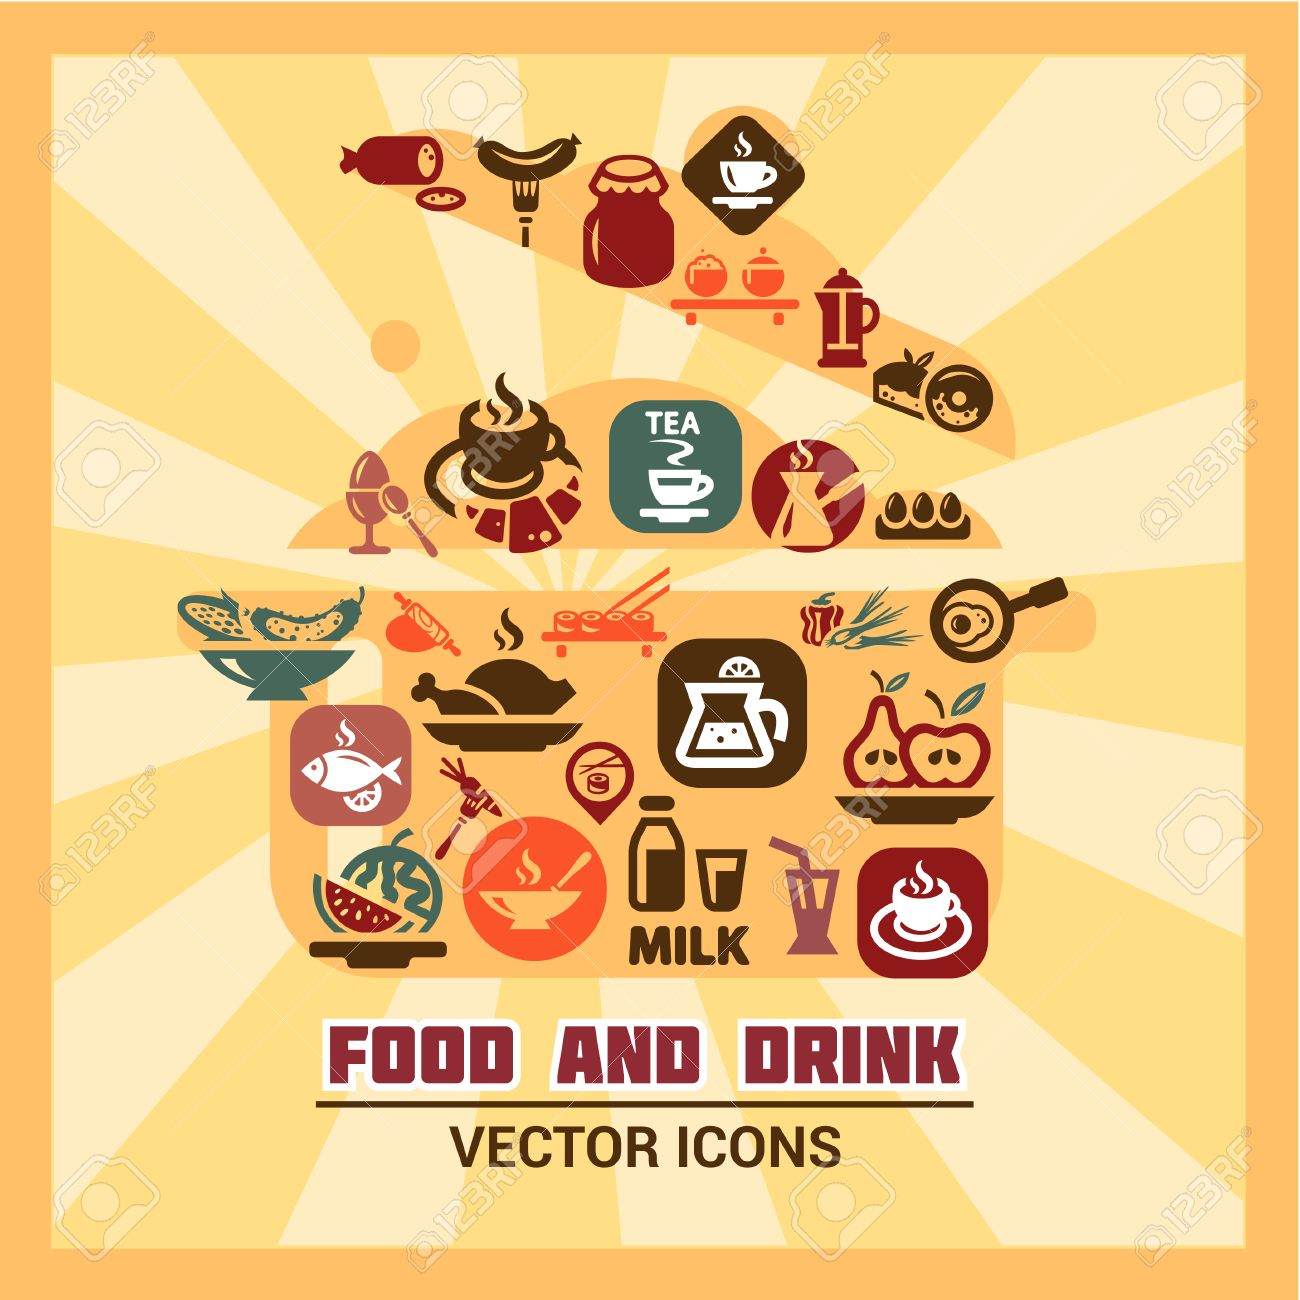 Elegent vector food clipart - ClipartFest image library